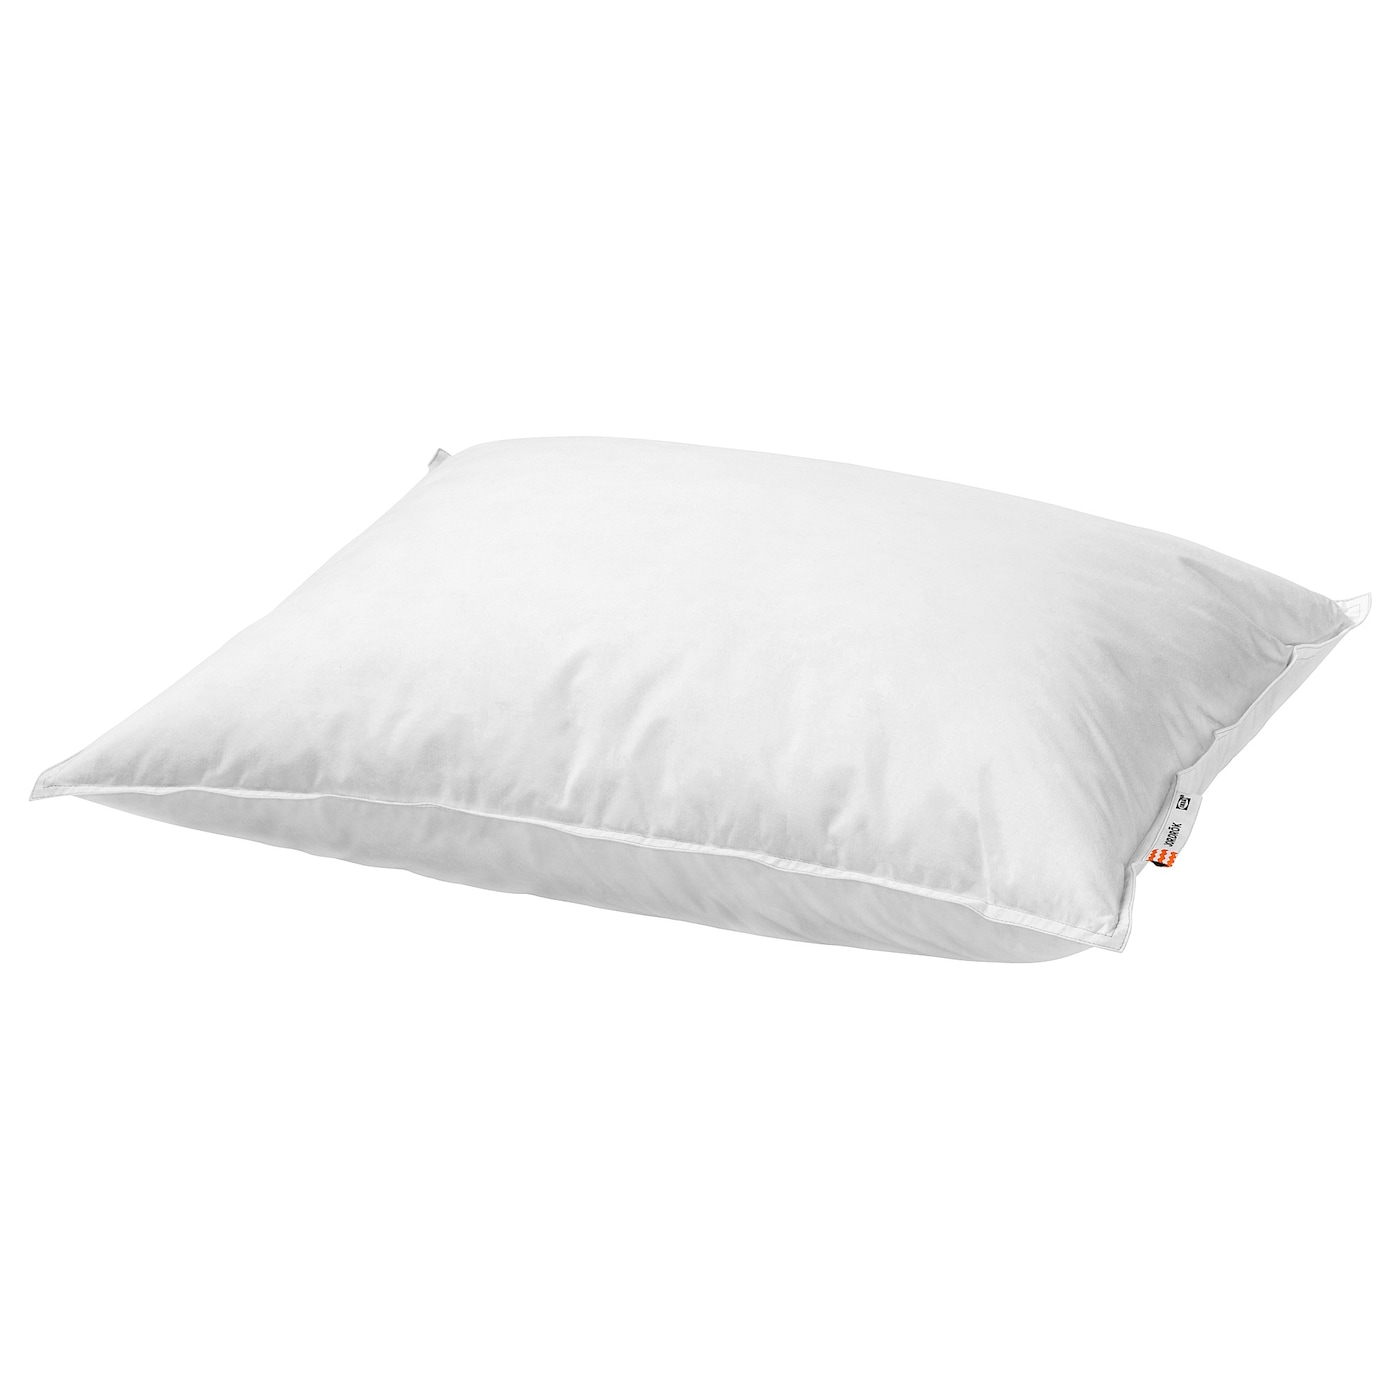 IKEA JORDRÖK pillow, softer A soft pillow in soft cotton, filled with duck down and feathers.